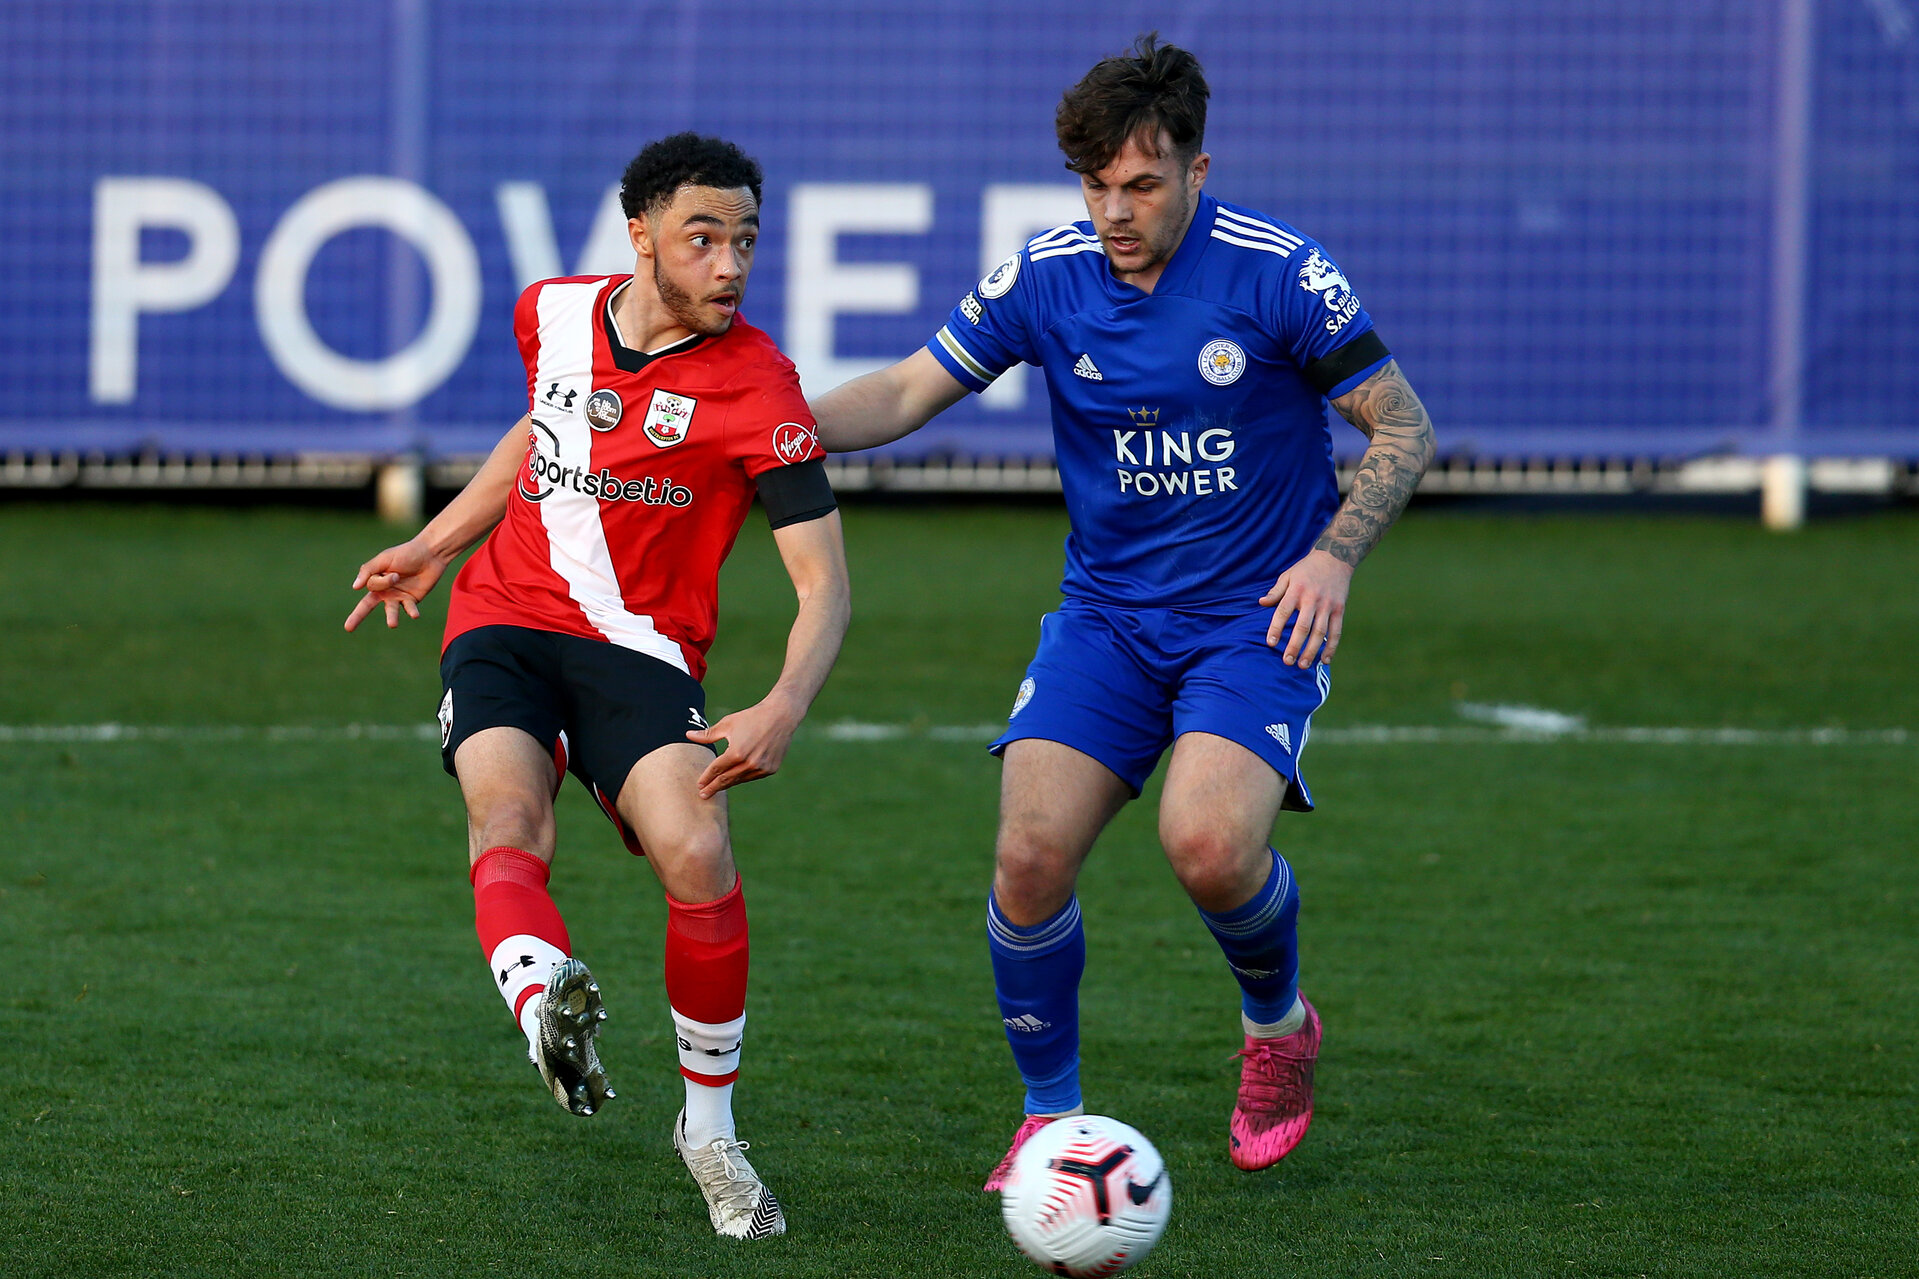 LEICESTER, ENGLAND - APRIL 19:  during the Premier League 2 match between Leicester City and Southampton B Team at the Leicester City Training Ground on April 19, 2021 in Leicester, England.  (Photo by Isabelle Field/Southampton FC via Getty Images)